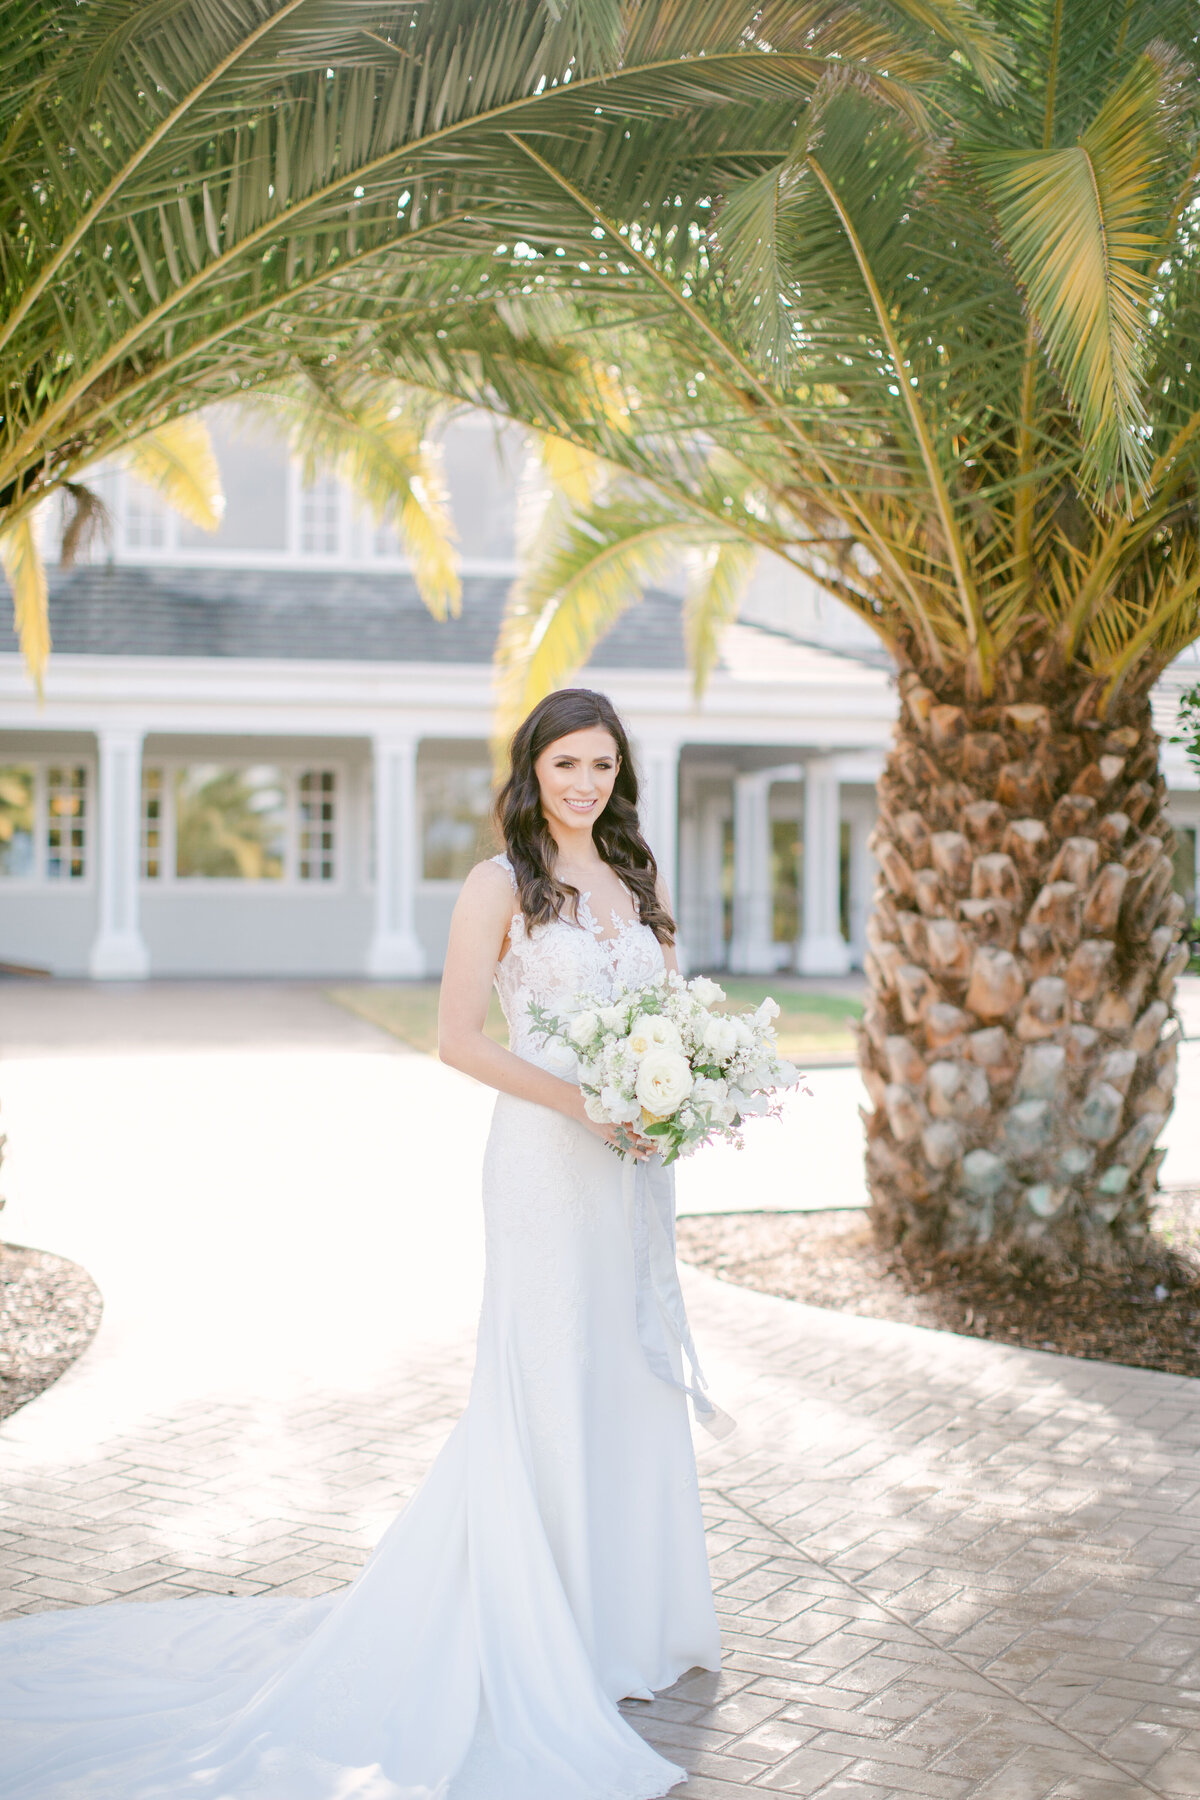 Tretter_Wedding_Carmel_Mountain_Ranch_San_Diego_California_Jacksonville_Florida_Devon_Donnahoo_Photography_0808